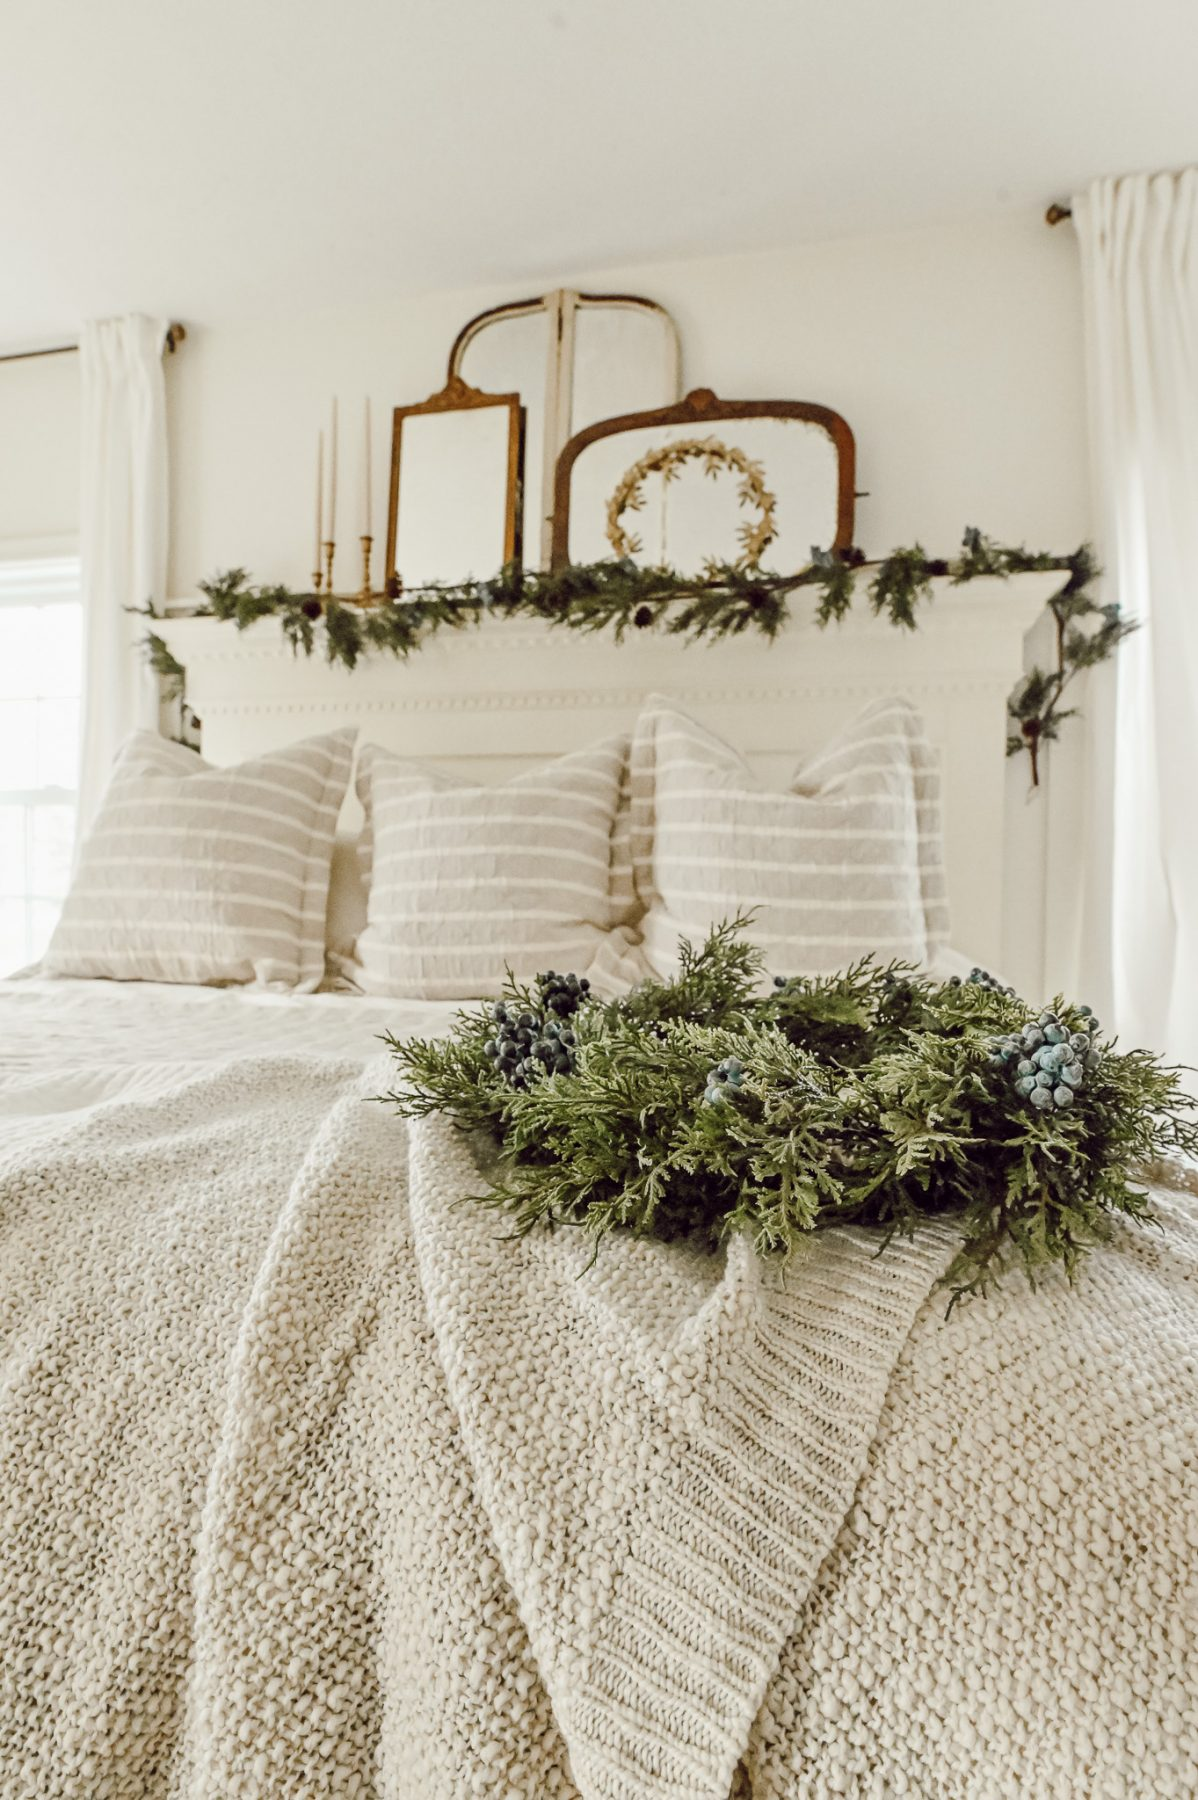 Quick and Easy Steps for a Cozy Christmas Bed